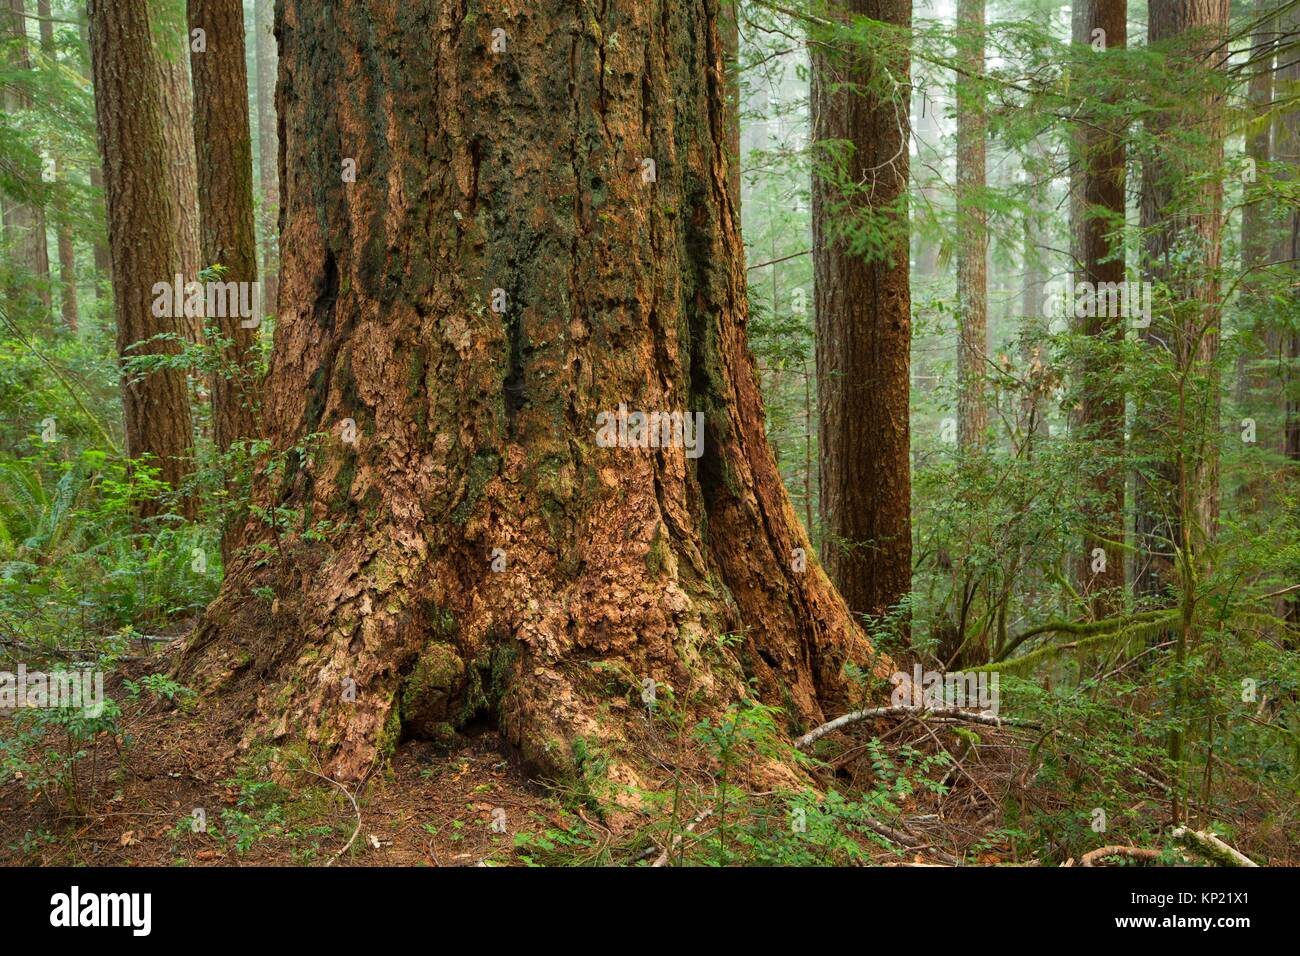 Coast redwood along Oregon Redwoods Interpretive Trail, Siskiyou National Forest, Oregon. - Stock Image